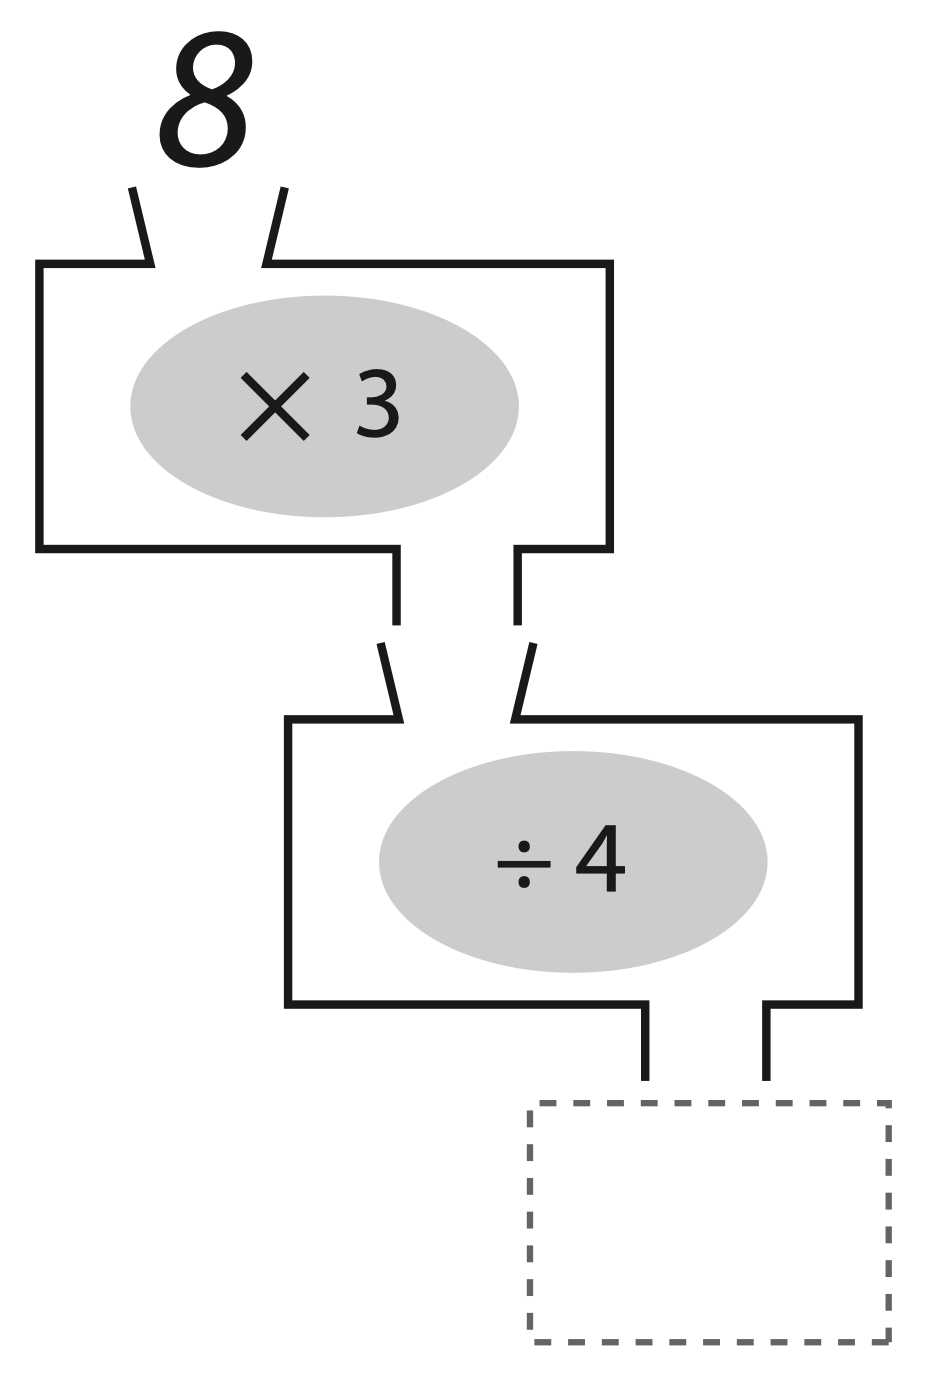 Two input/output machines stacked on top of each other. The first is a multiply by three machine and the second is divide by four. The output from the first machine falls into the input slot for the second machine. The number 8 is the slot for the input in the first machine.